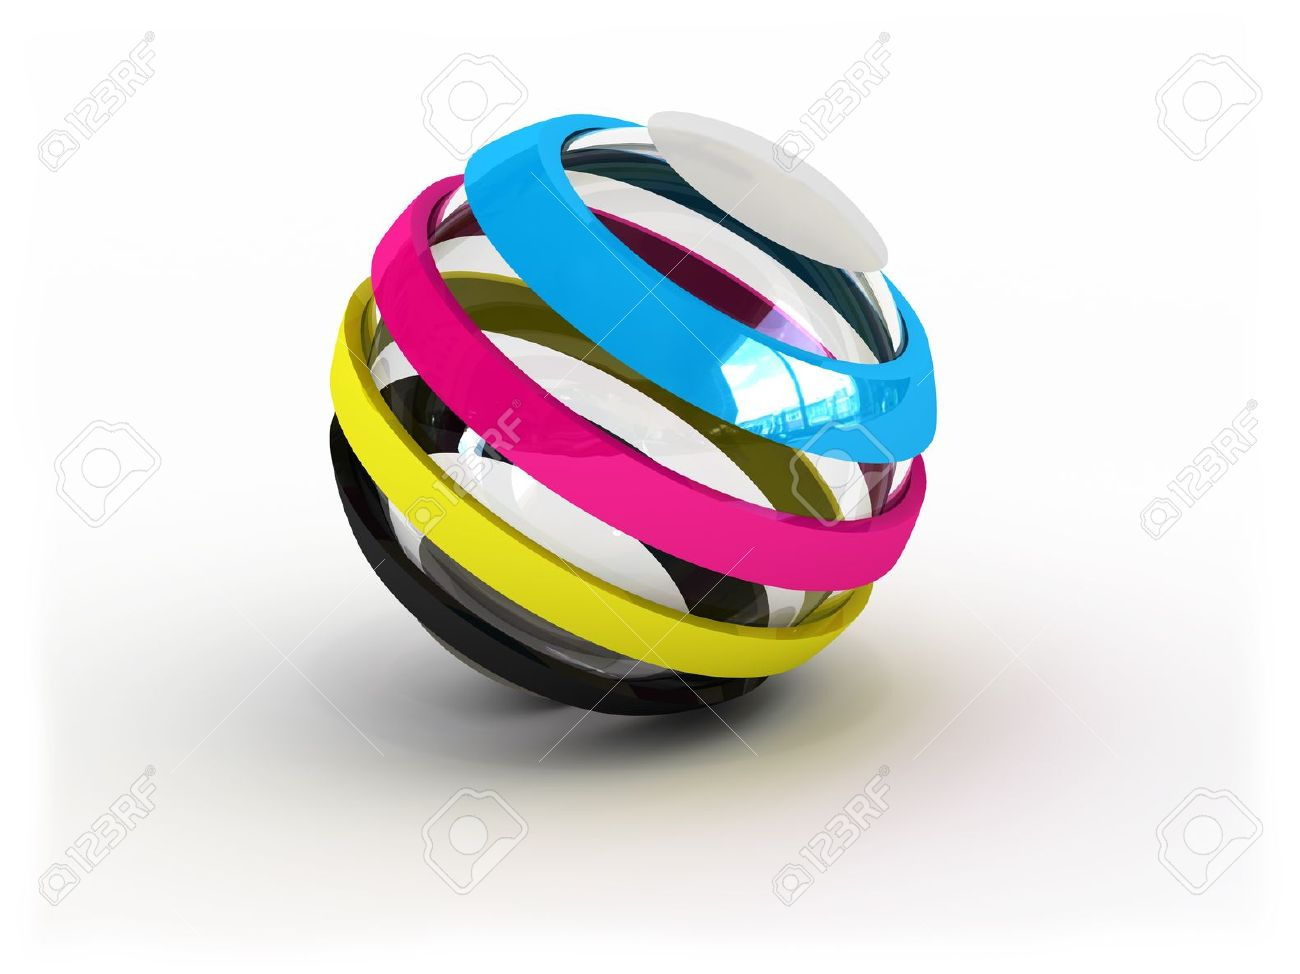 CMYK ball sign (image can be used for printing or web) - 11556555